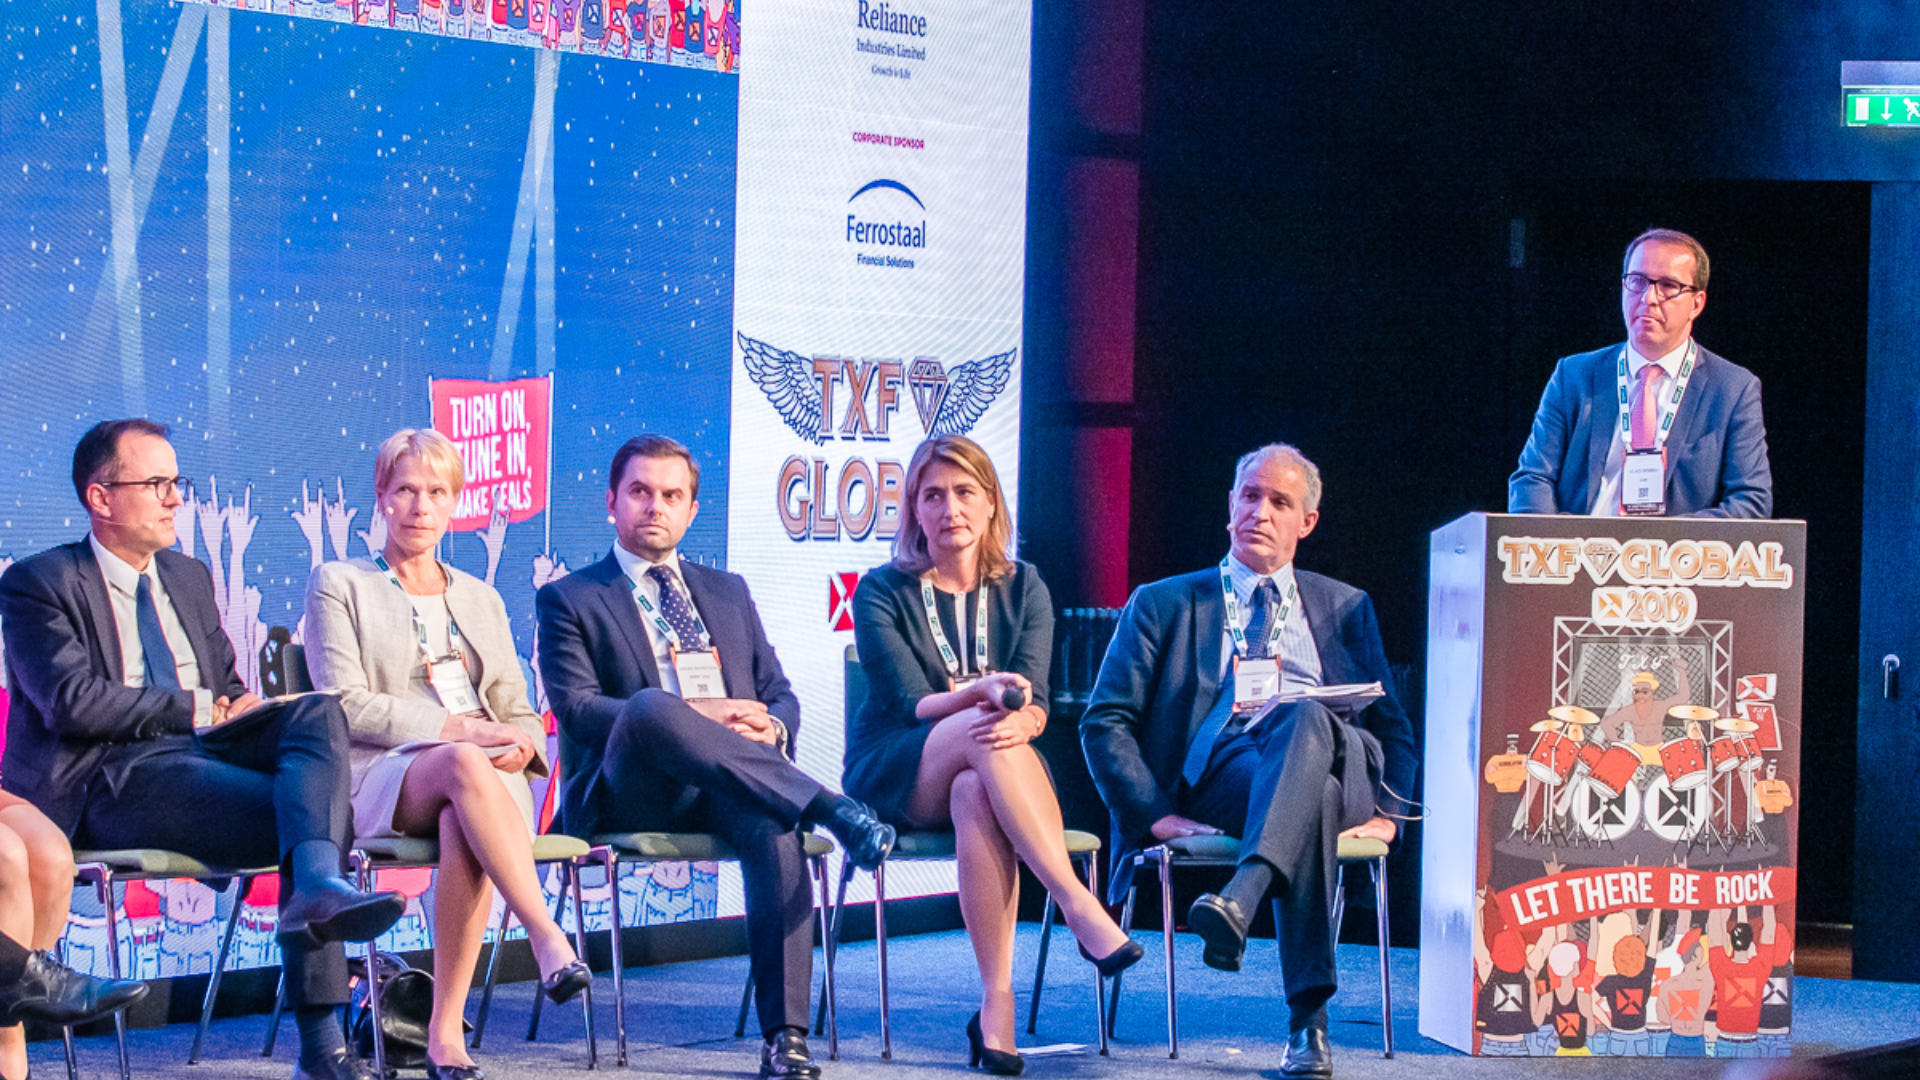 Export finance with purpose: The role of the modern ECA debated